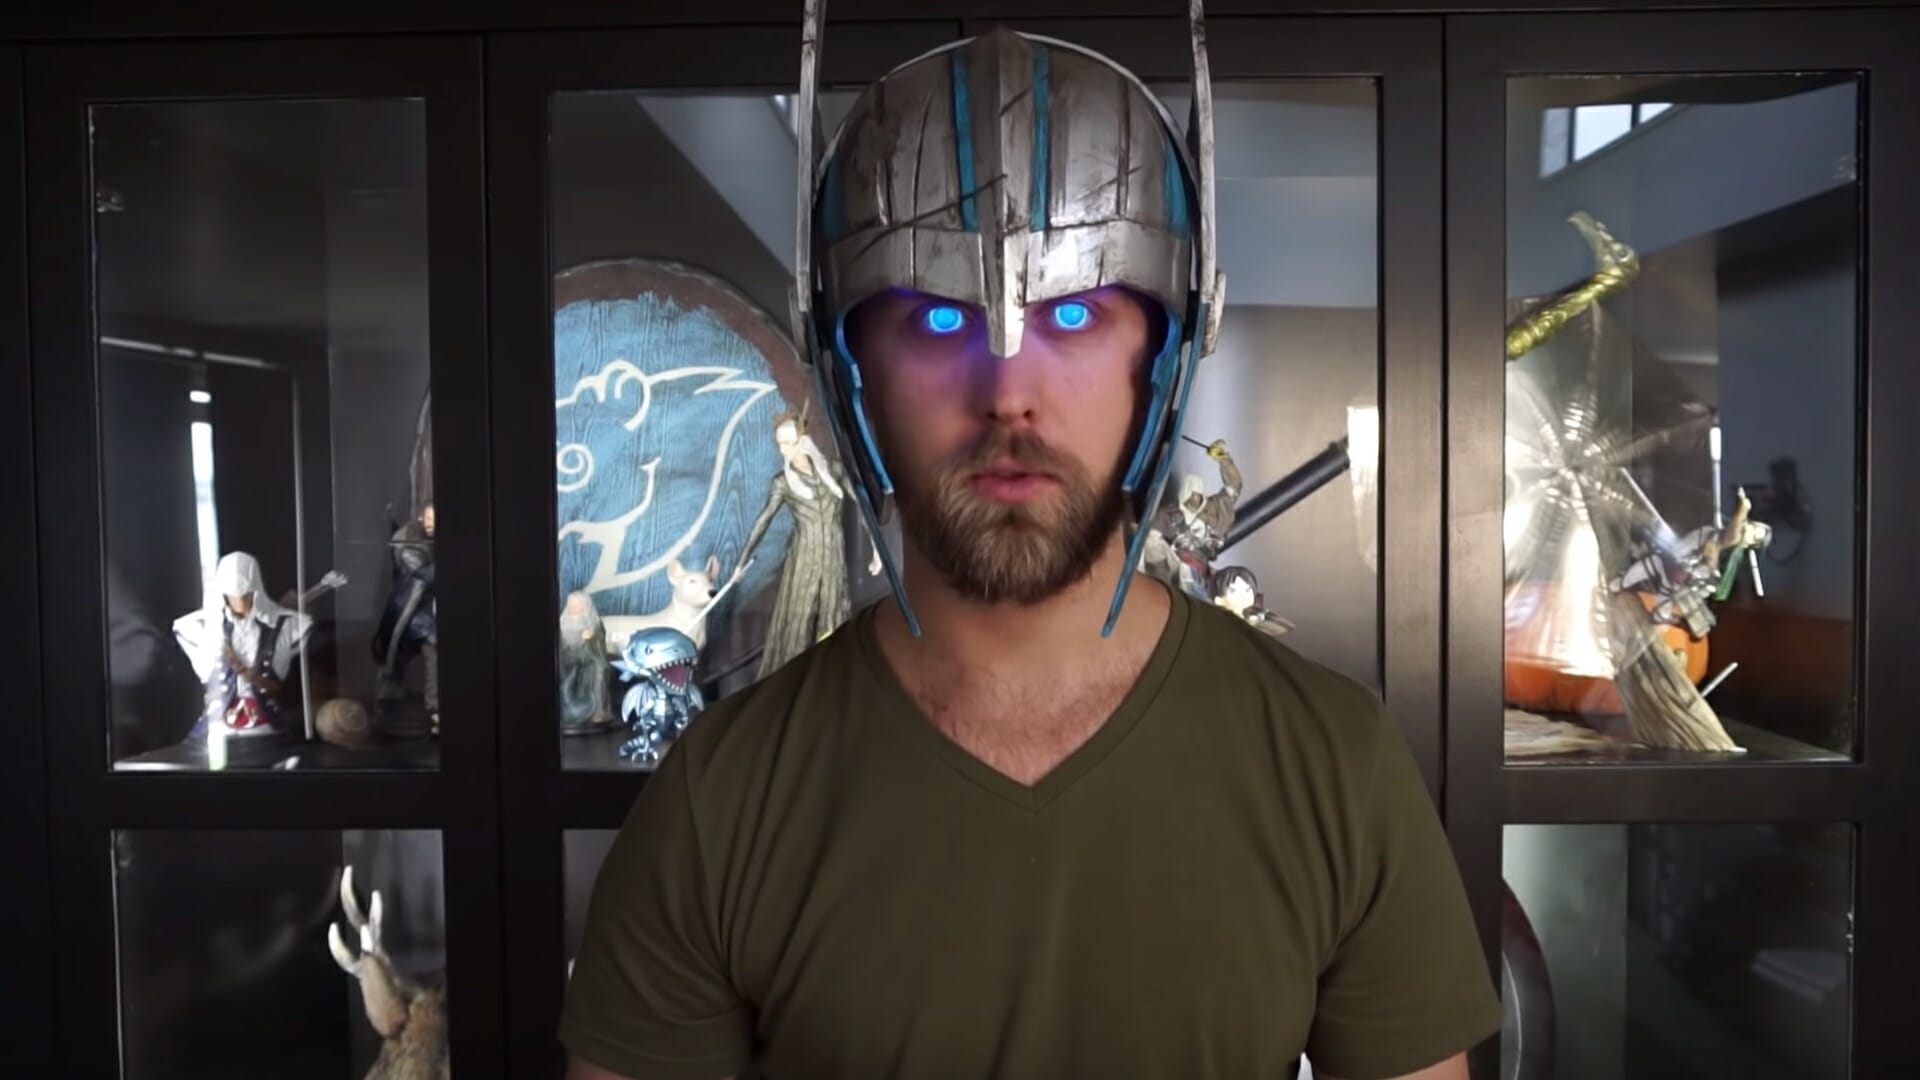 Clever but dangerous; cosplay like an angry Thor